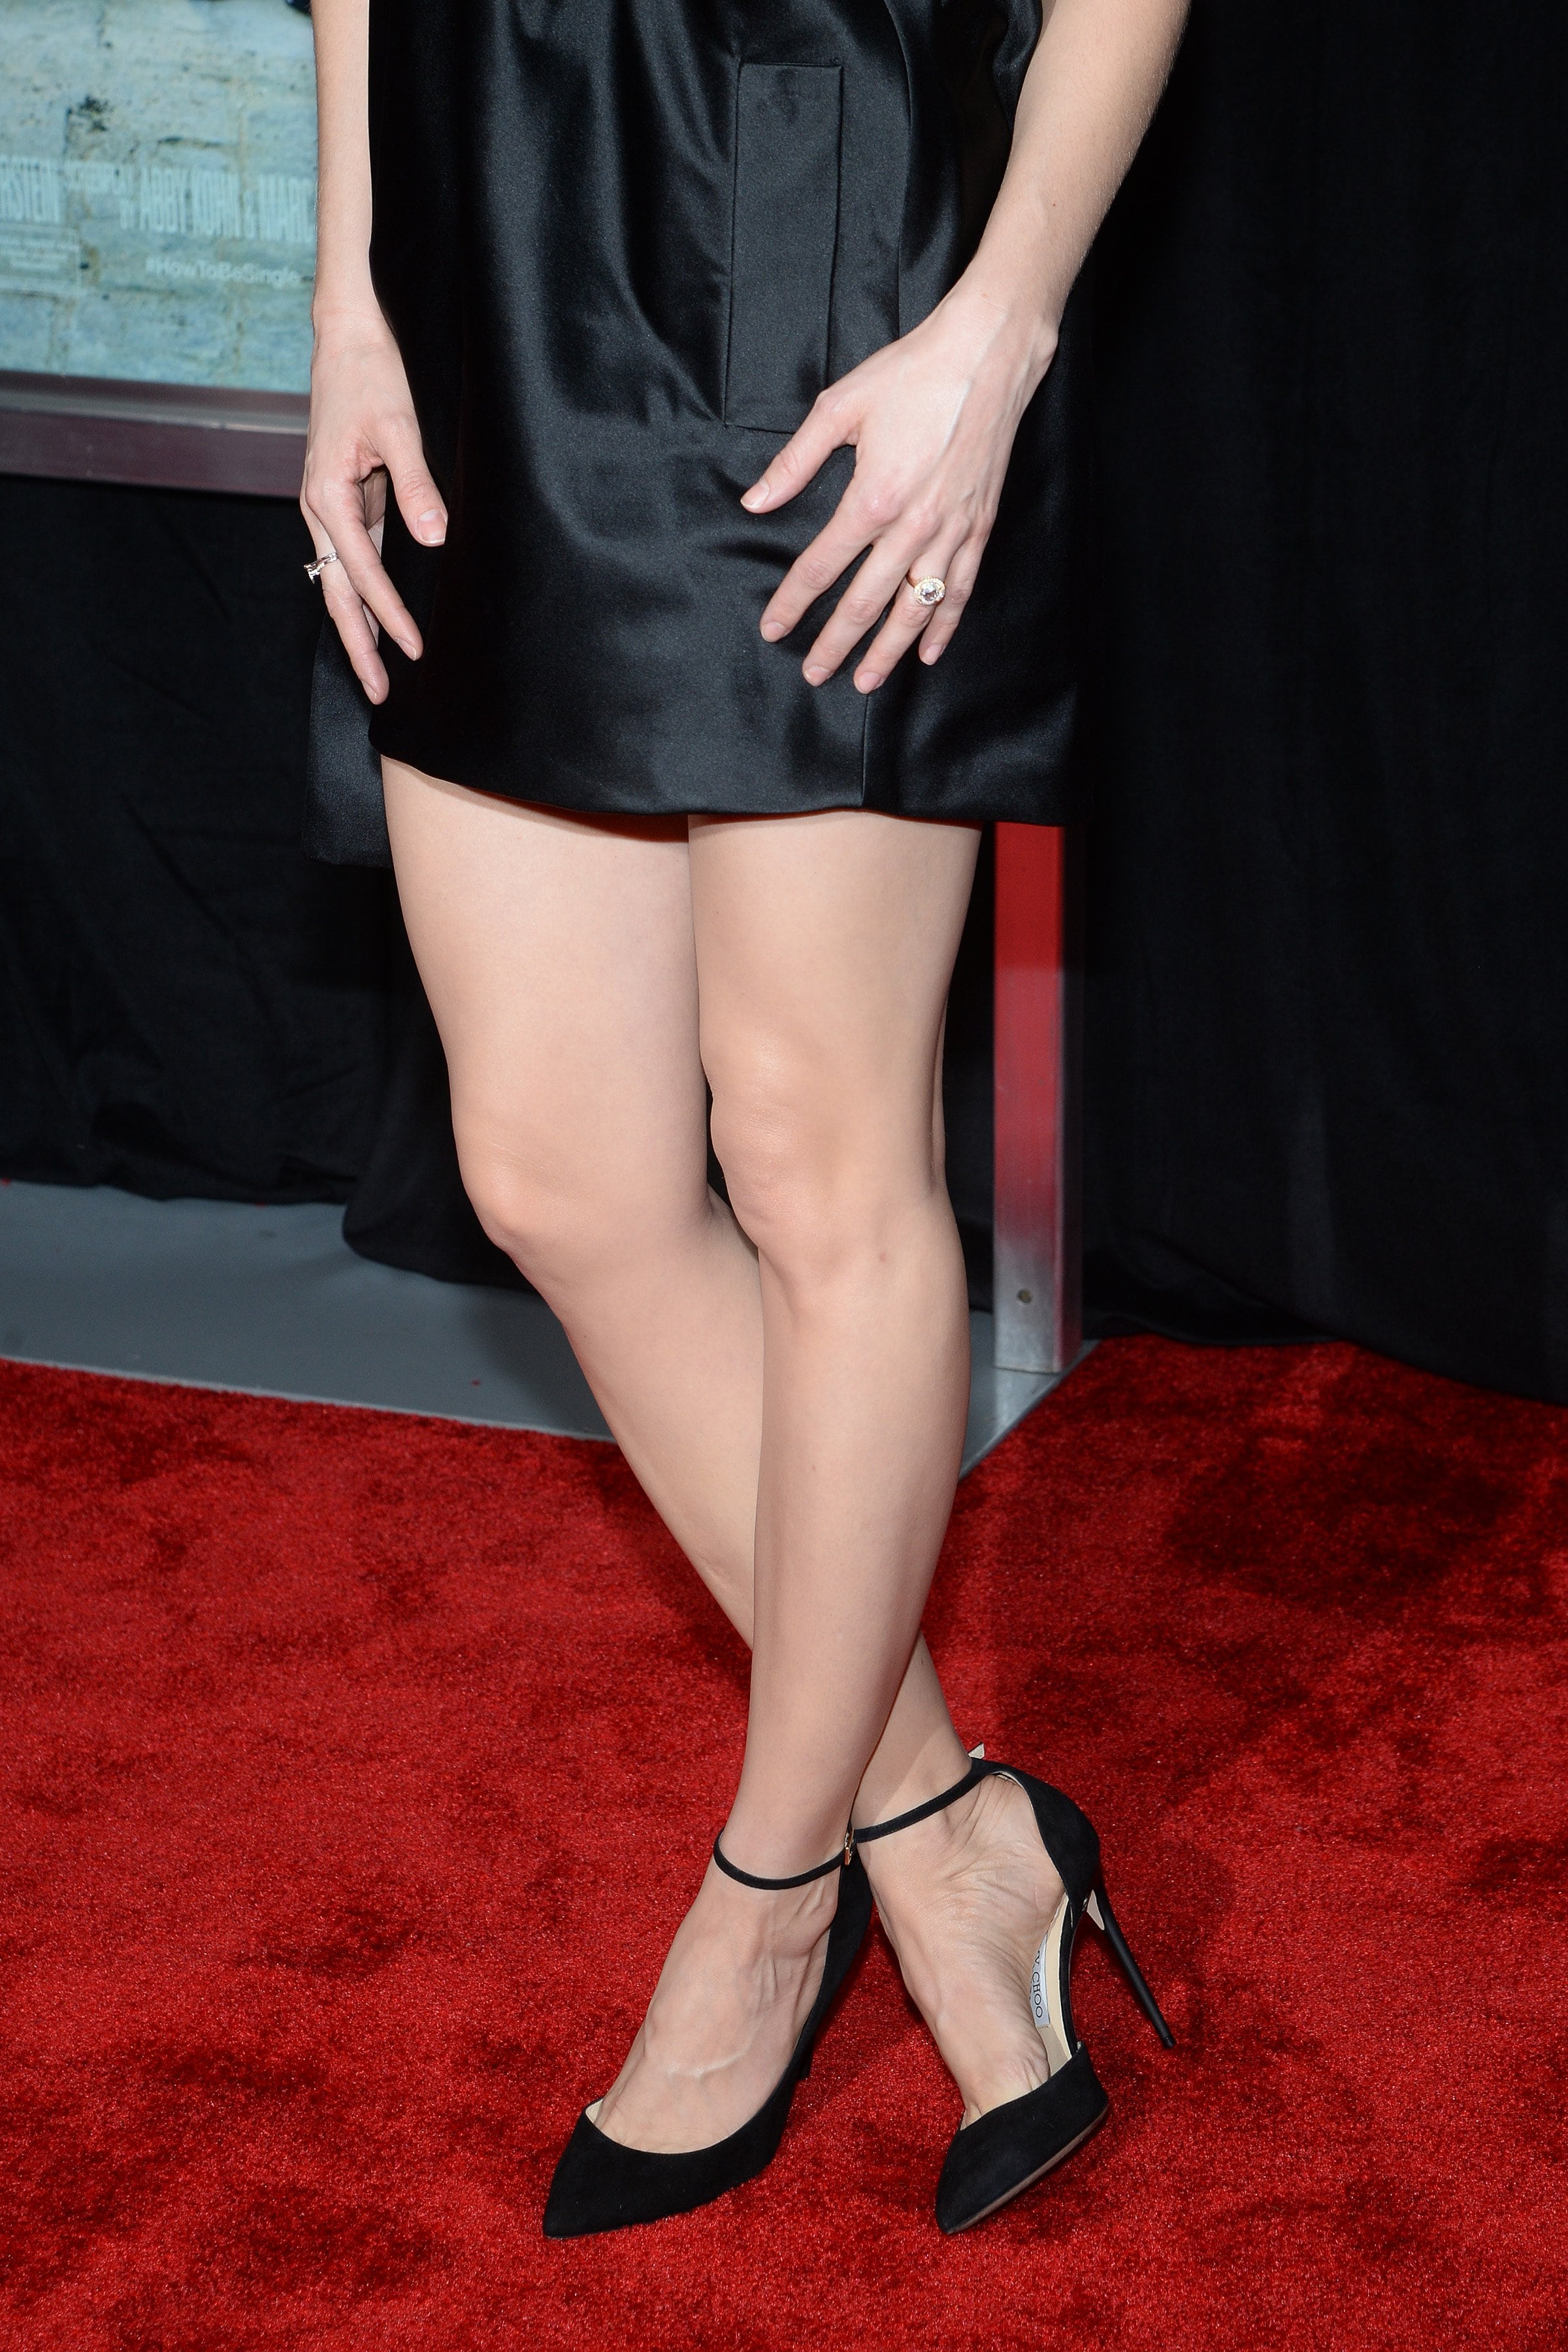 Alison Brie Sexy Feet Photo